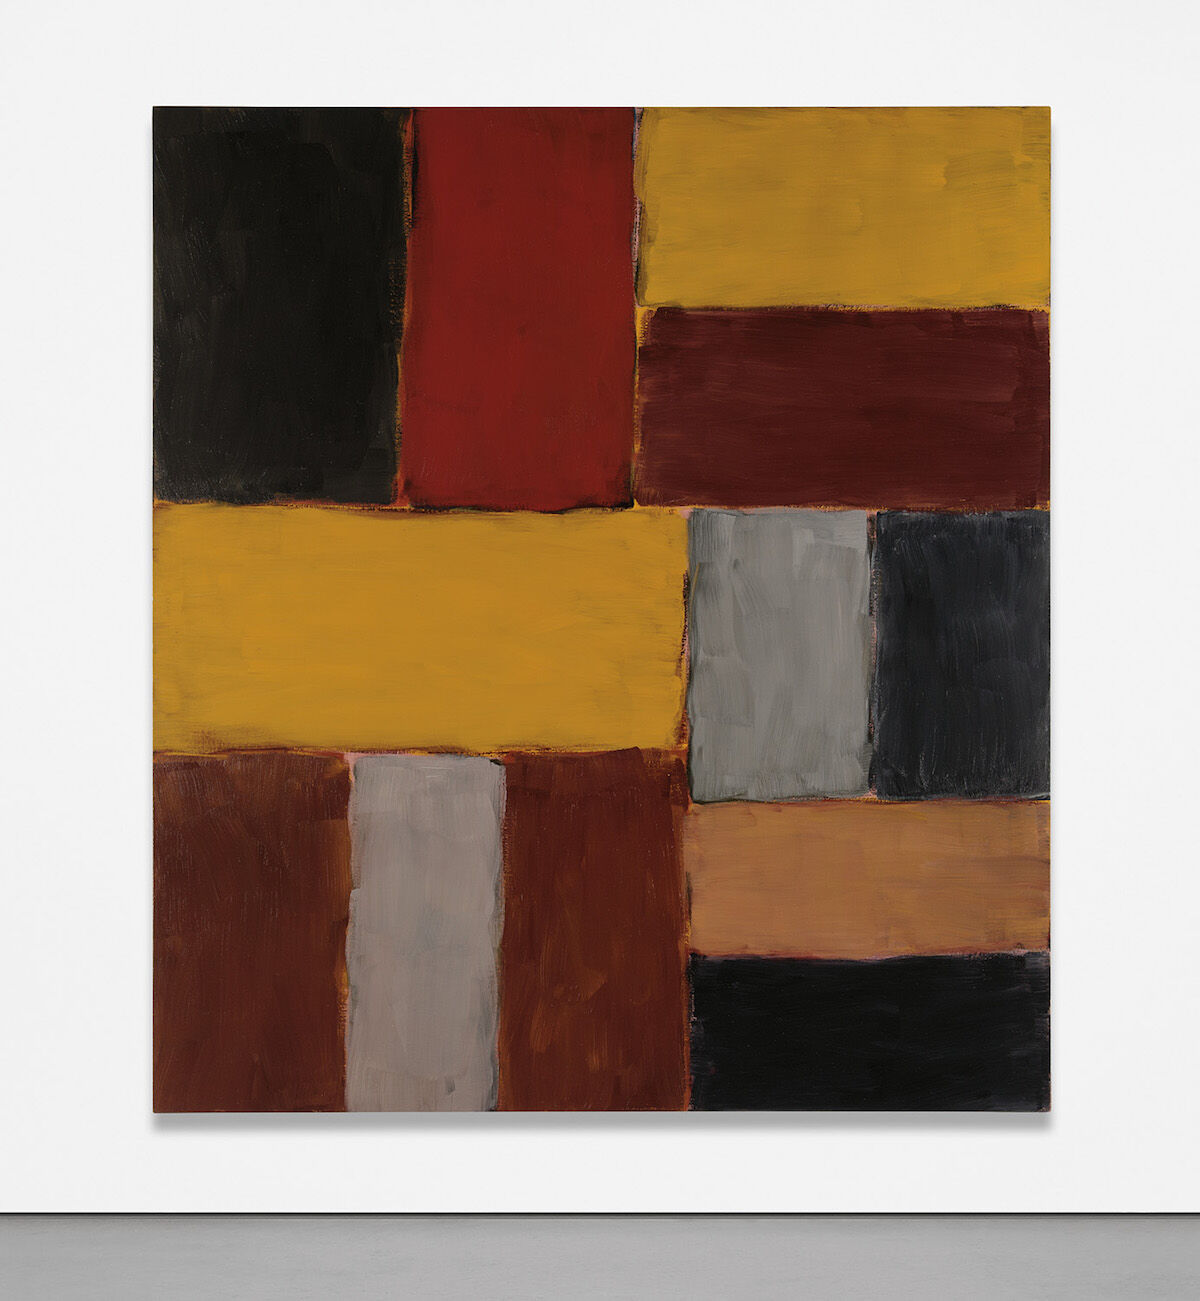 Sean Scully, Red Bar, 2003–04. Sold for $1.7 million. Courtesy Phillips.